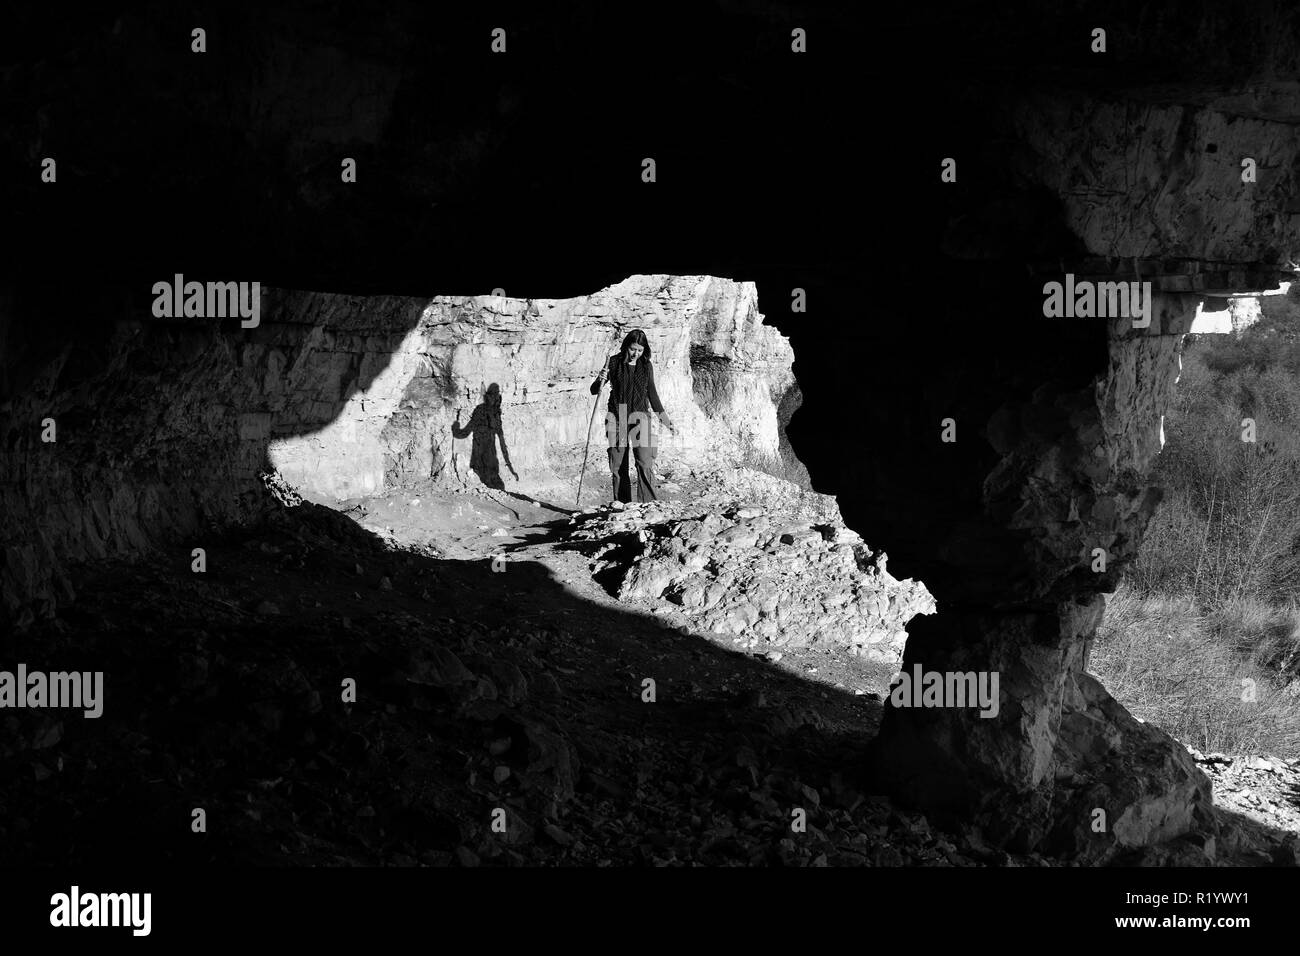 Exploring 'Canaraua Fetei' amazing grotto in a special protection area at the border with Bulgaria, in Dobrogea land, Romania. Black and white image. - Stock Image